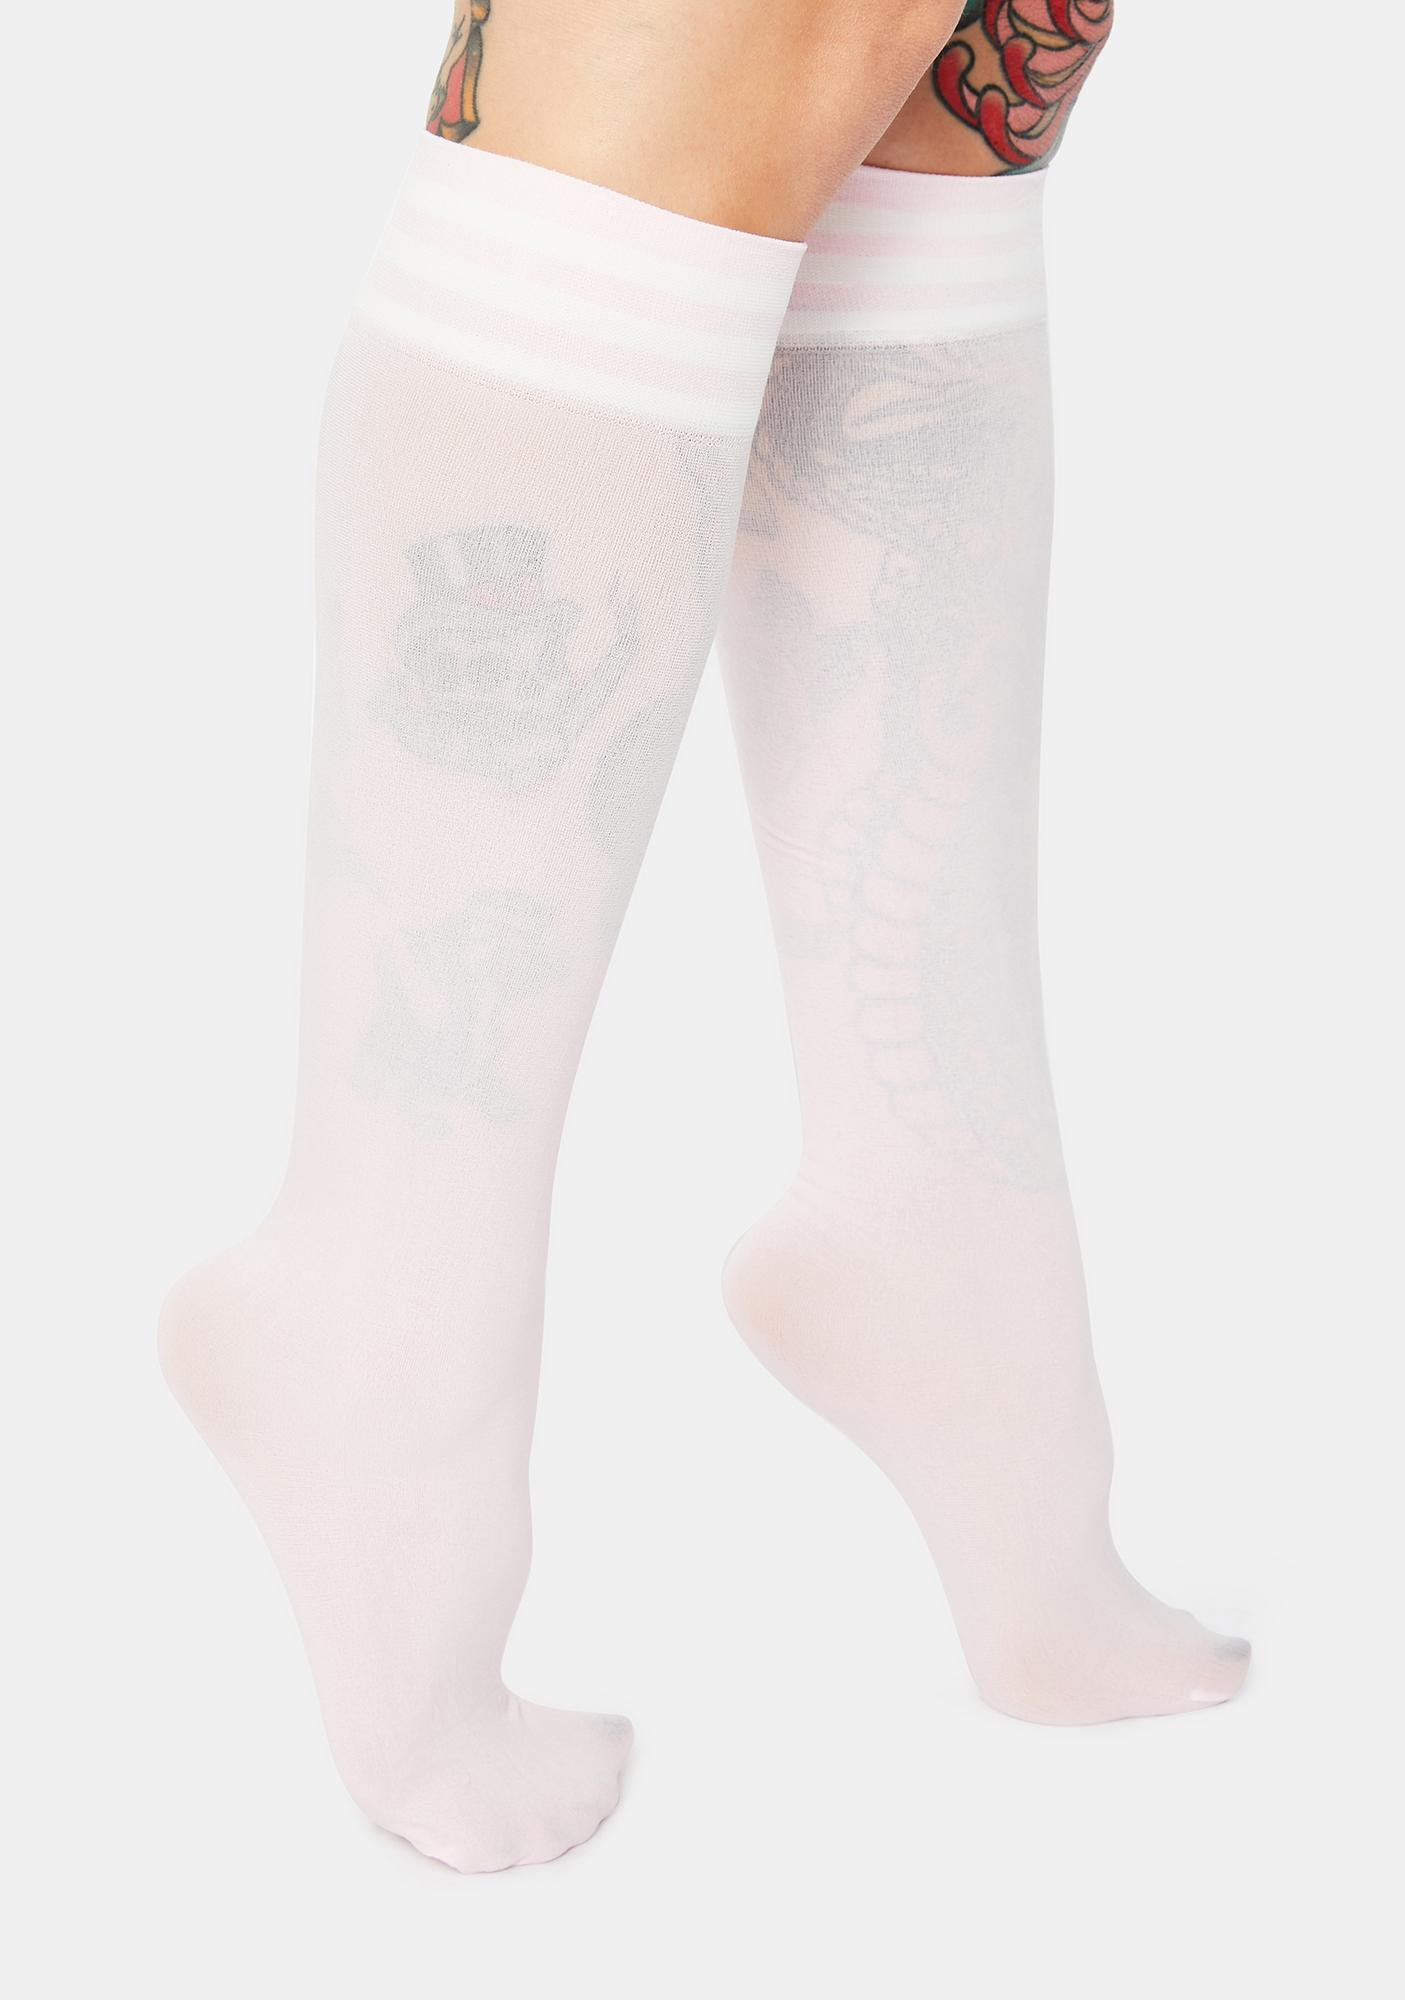 Sweet Sporty Sass Stripe Knee High Socks